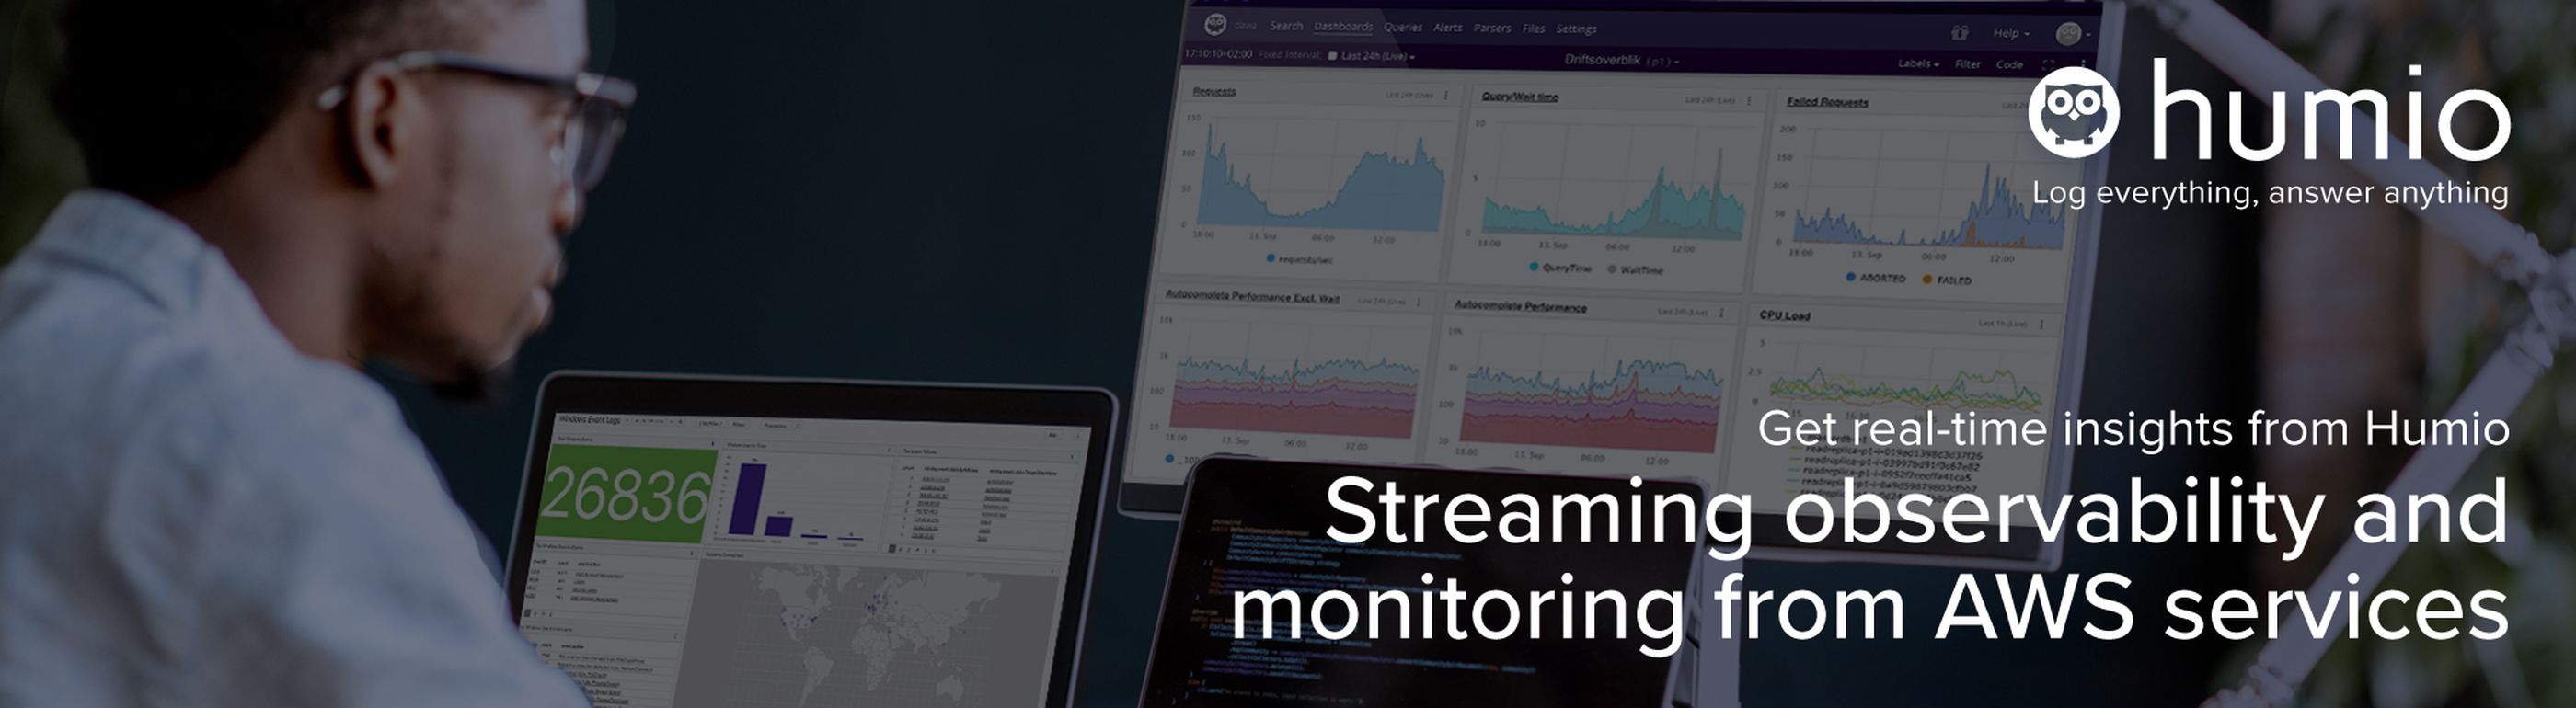 Streaming observability and monitoring from AWS services